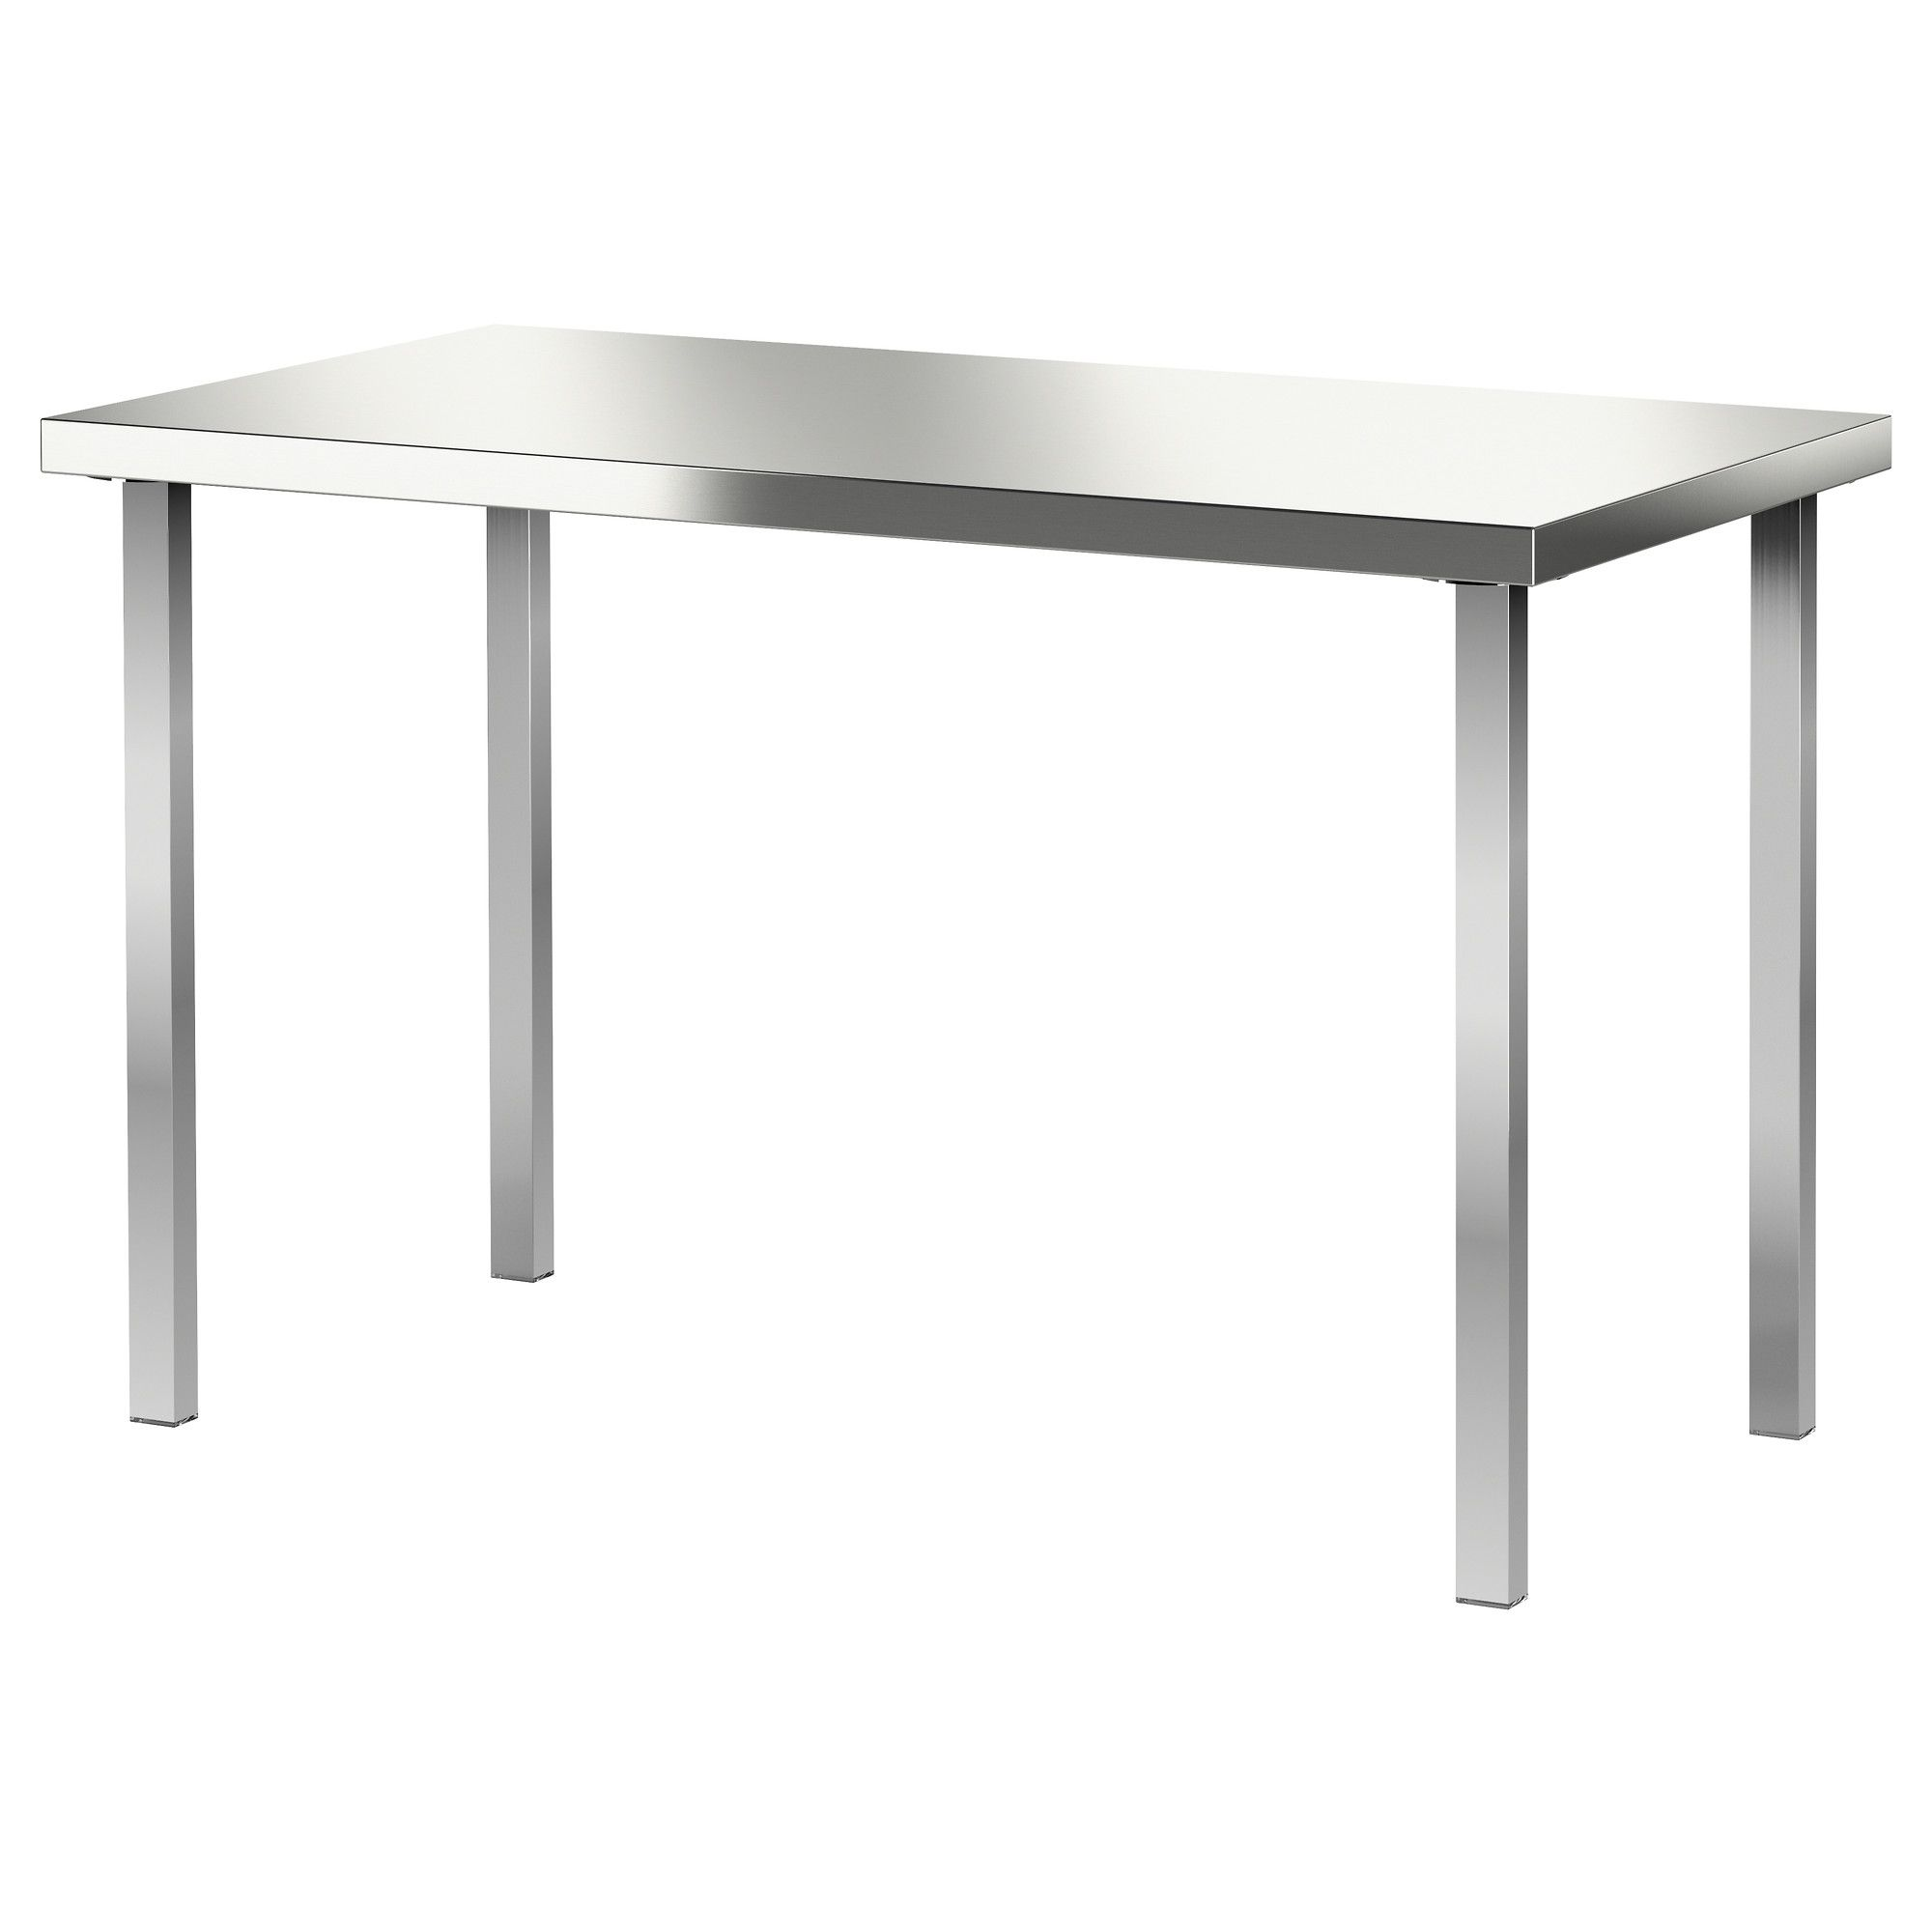 sanfrid godvin table ikea stainless steel strong durable easy eugene accent white winsome keep clean surface possible craft idea versailles furniture brown coffee outdoor covers